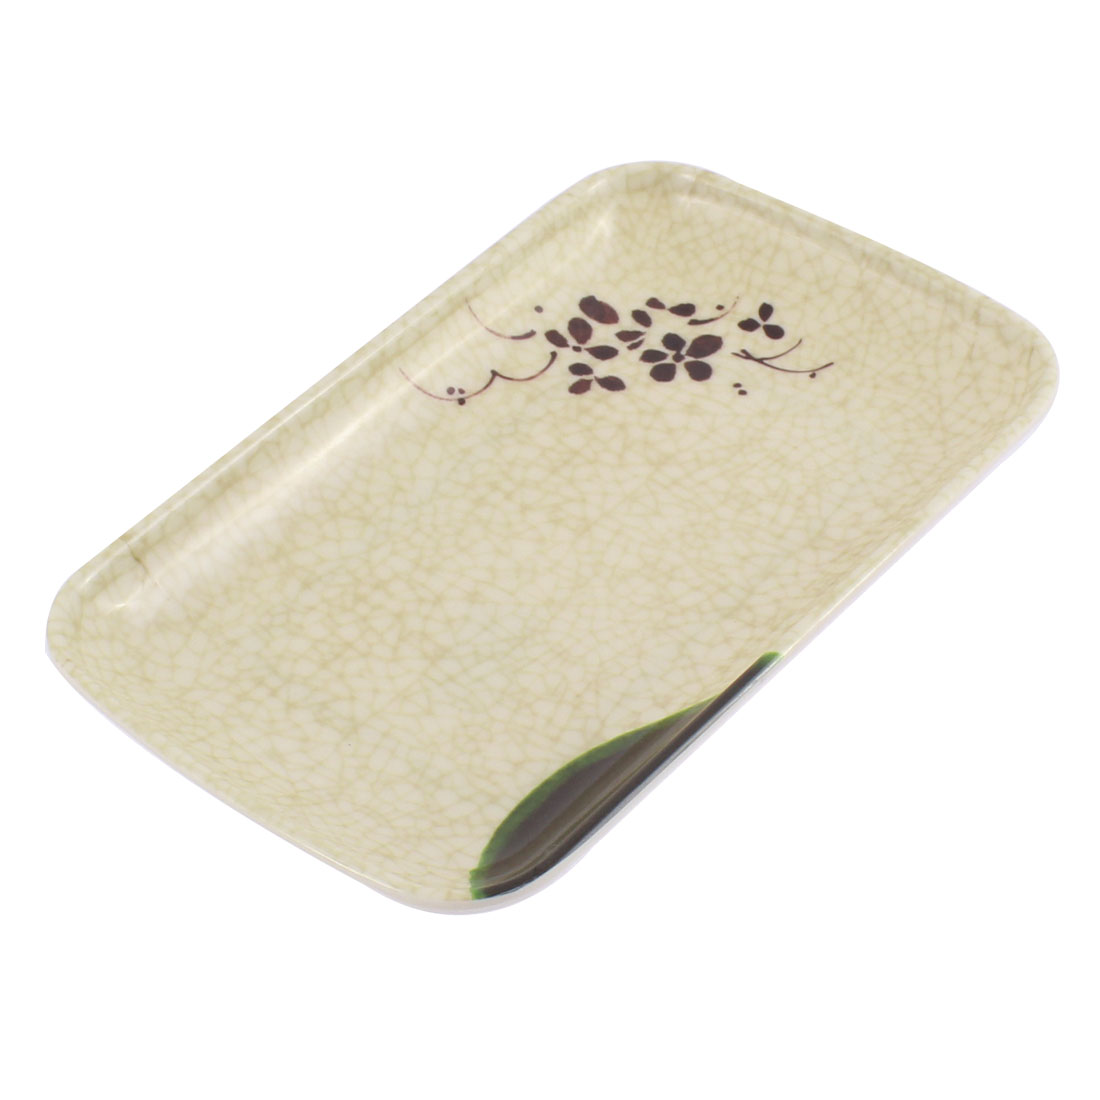 Rectangle Shaped Flower Printed Food Snack Dish Plate Towel Tray 19x12cm